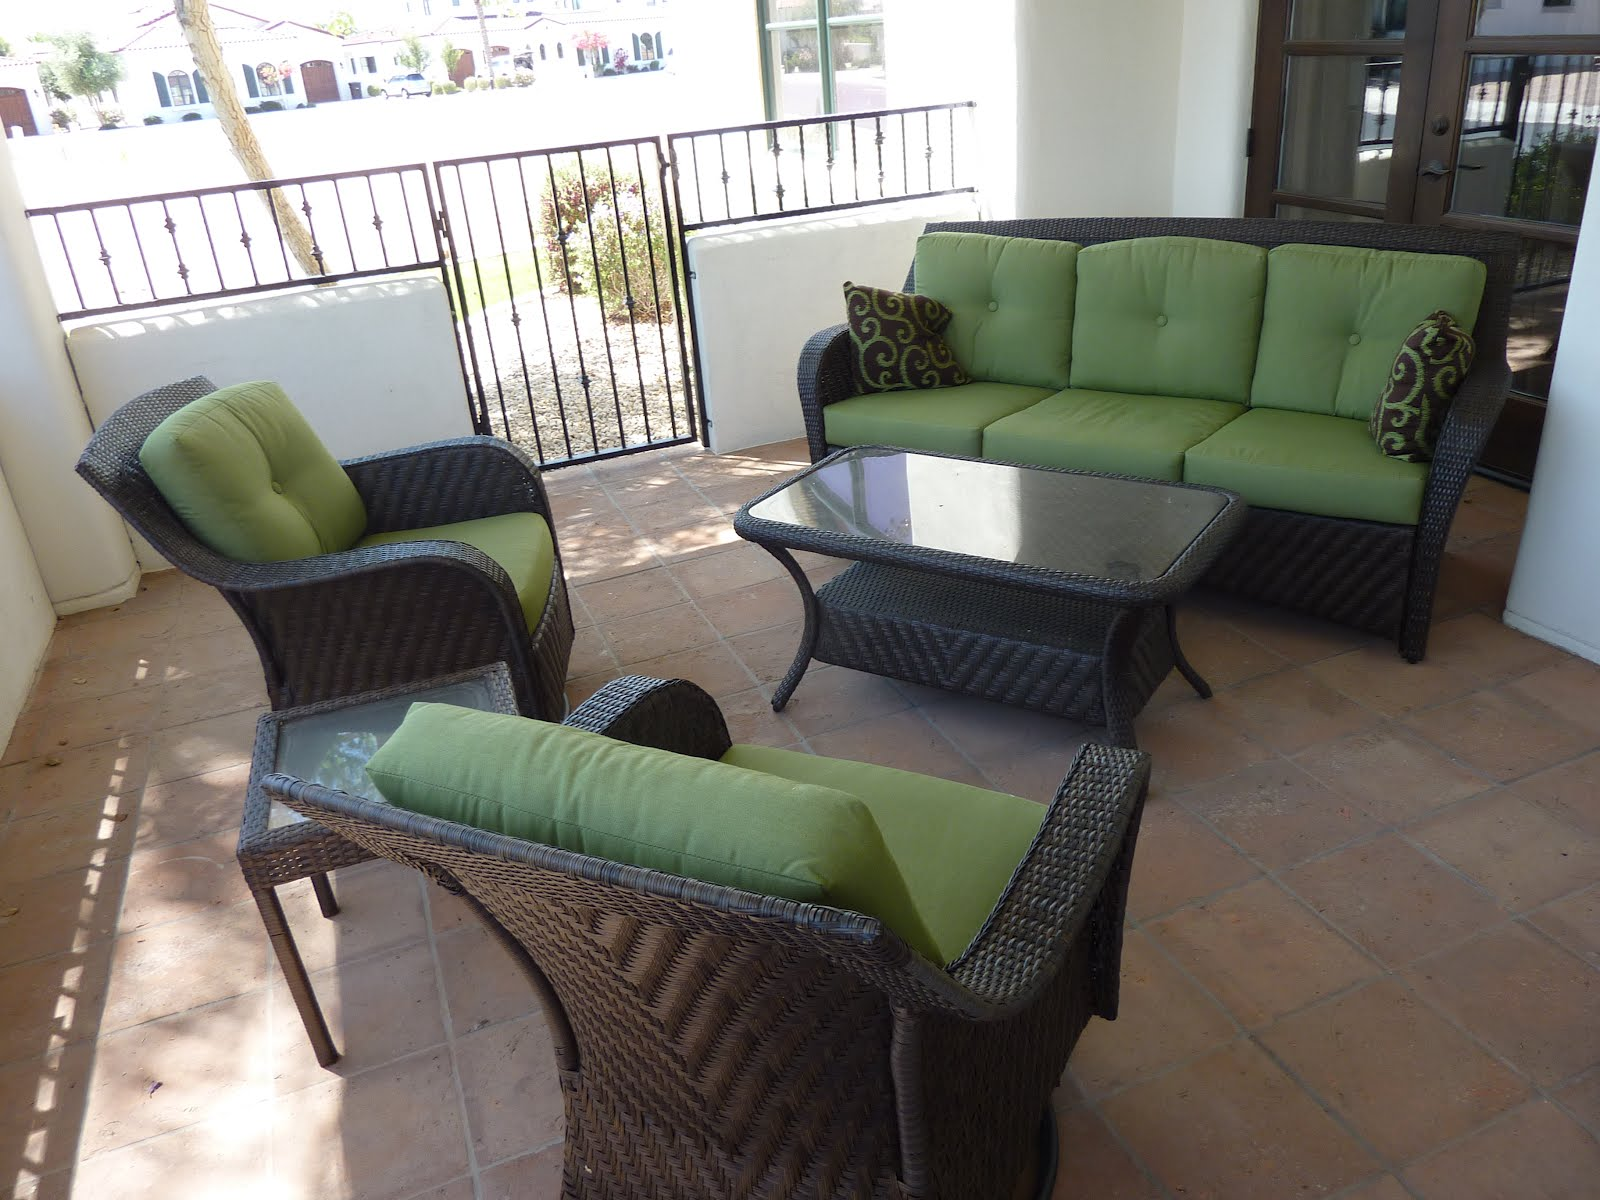 PATIO IDEAS PATIO DESIGN IDEAS GREAT PATIO IDEAS NICE WICKER PATIO FURNI